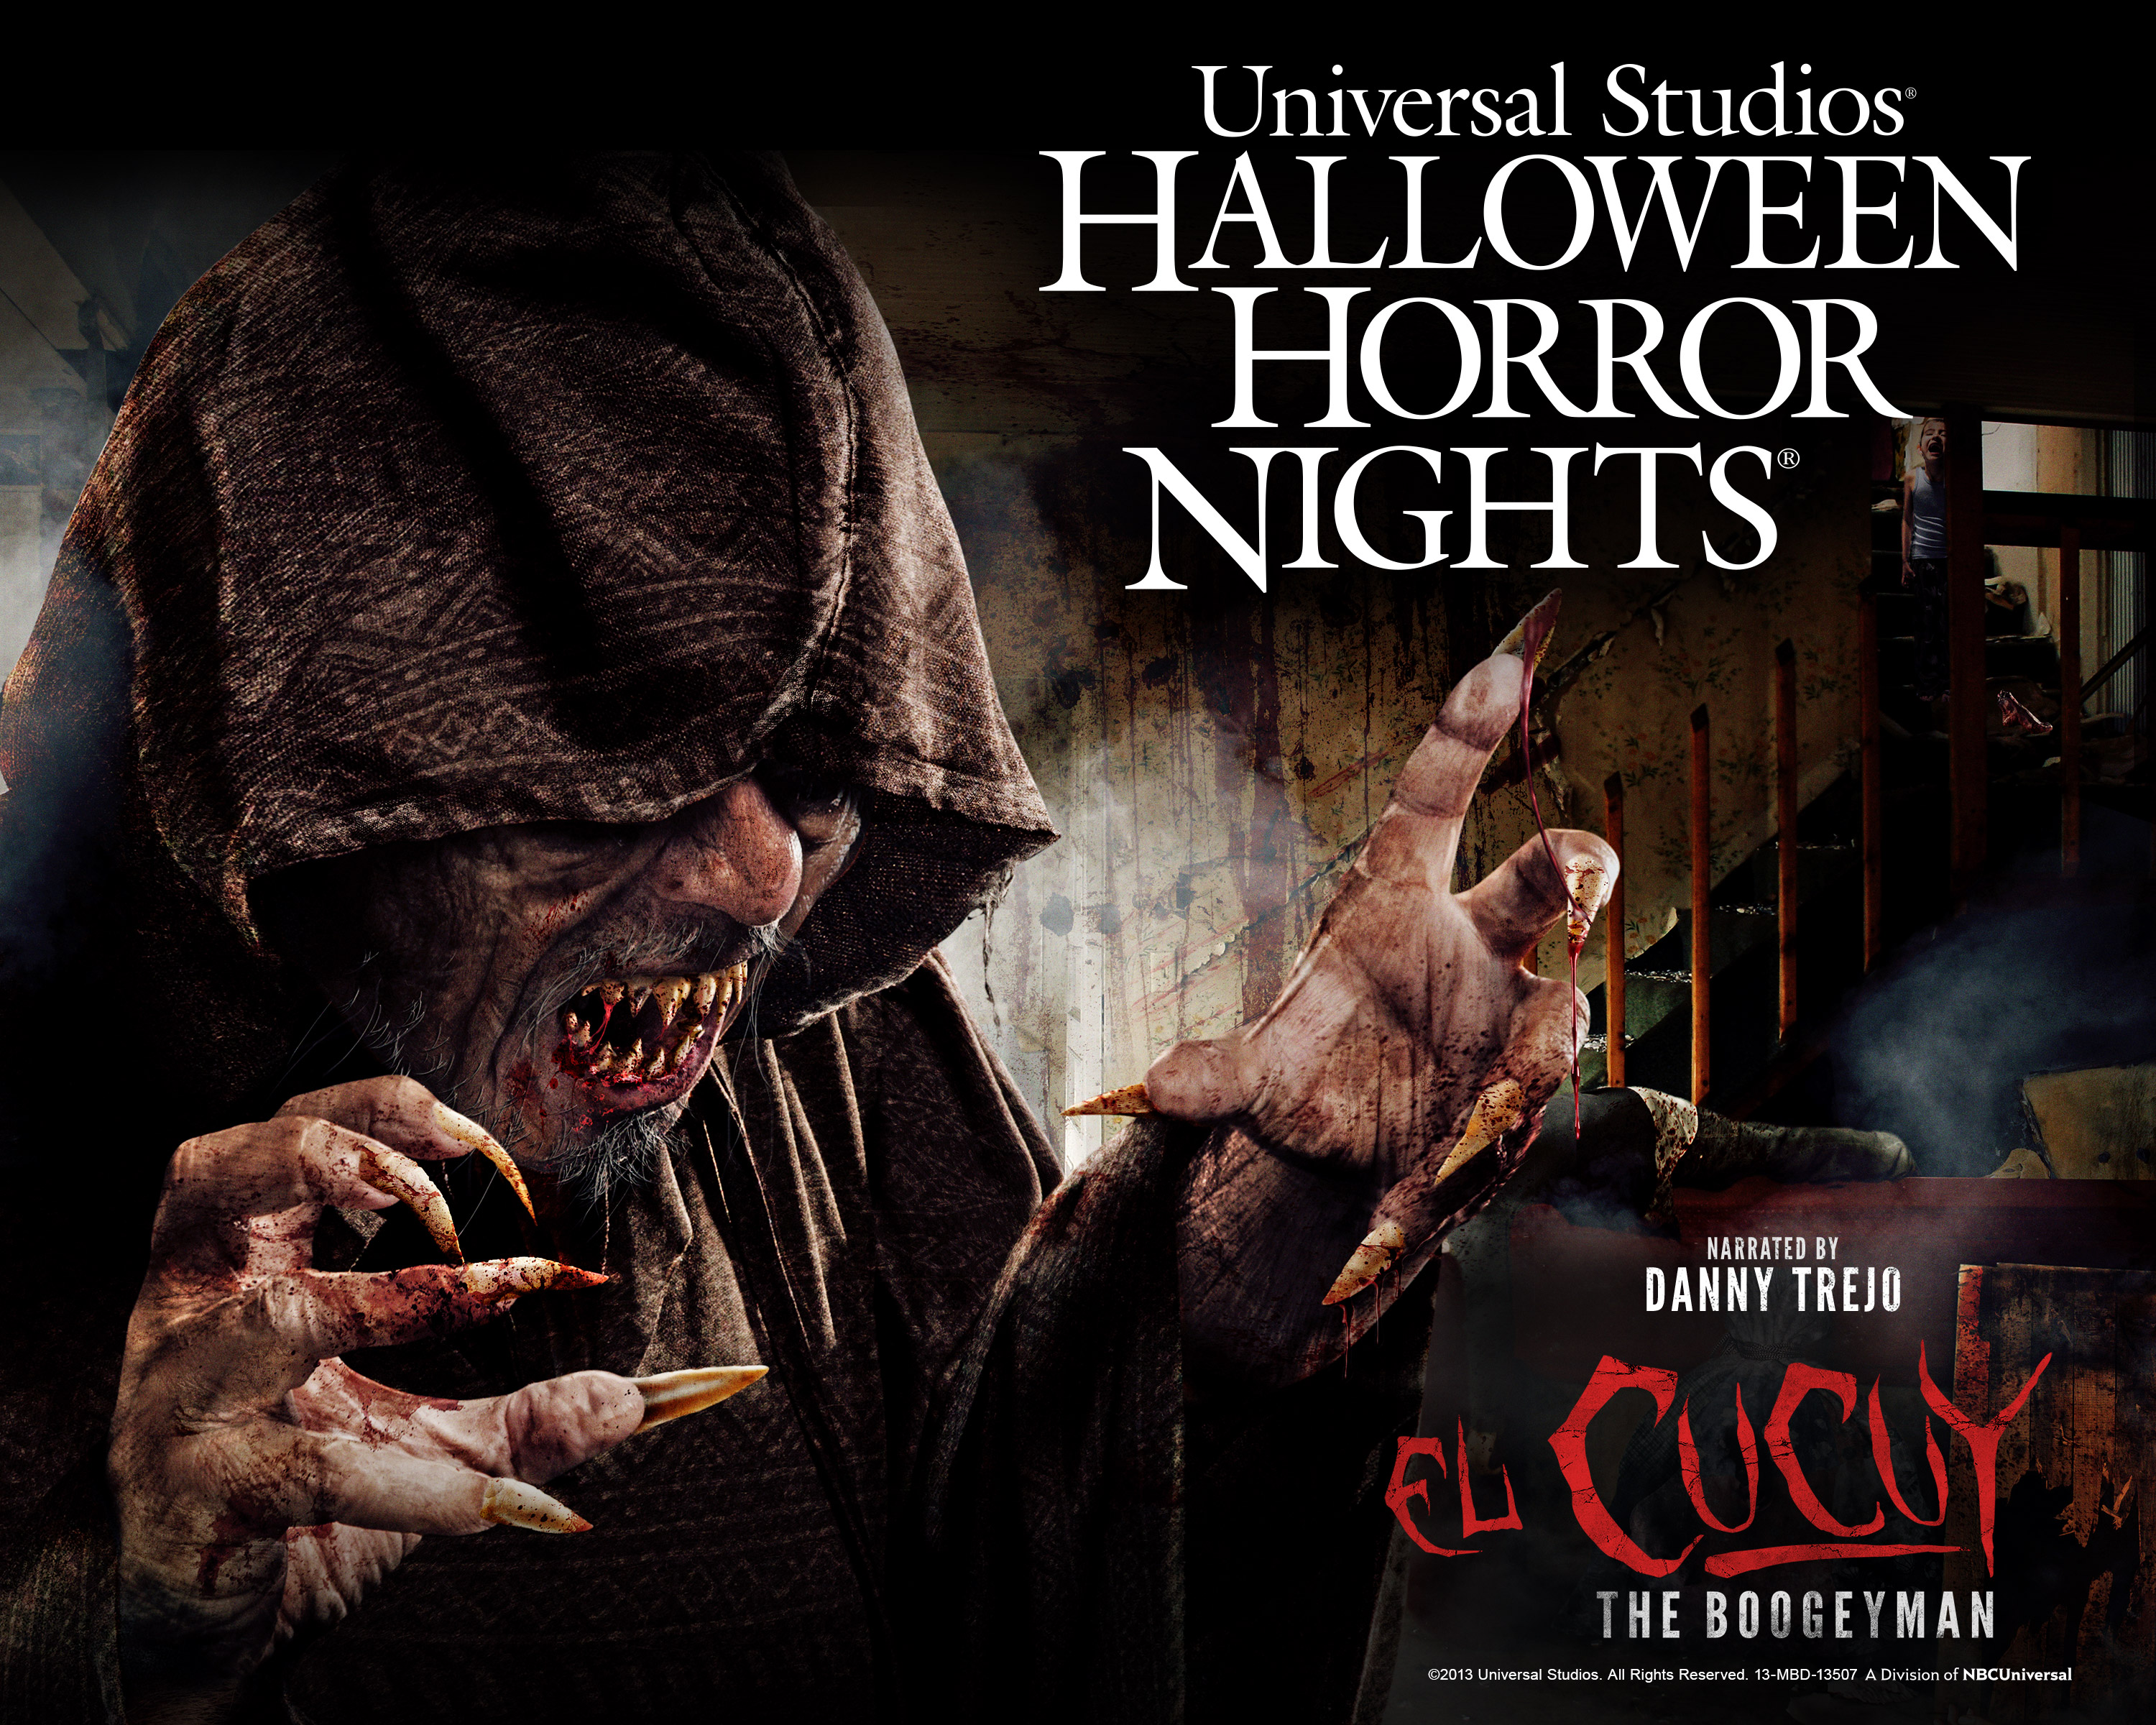 Halloween Horror Nights 2013 Tickets Now on Sale - Theme Park ...